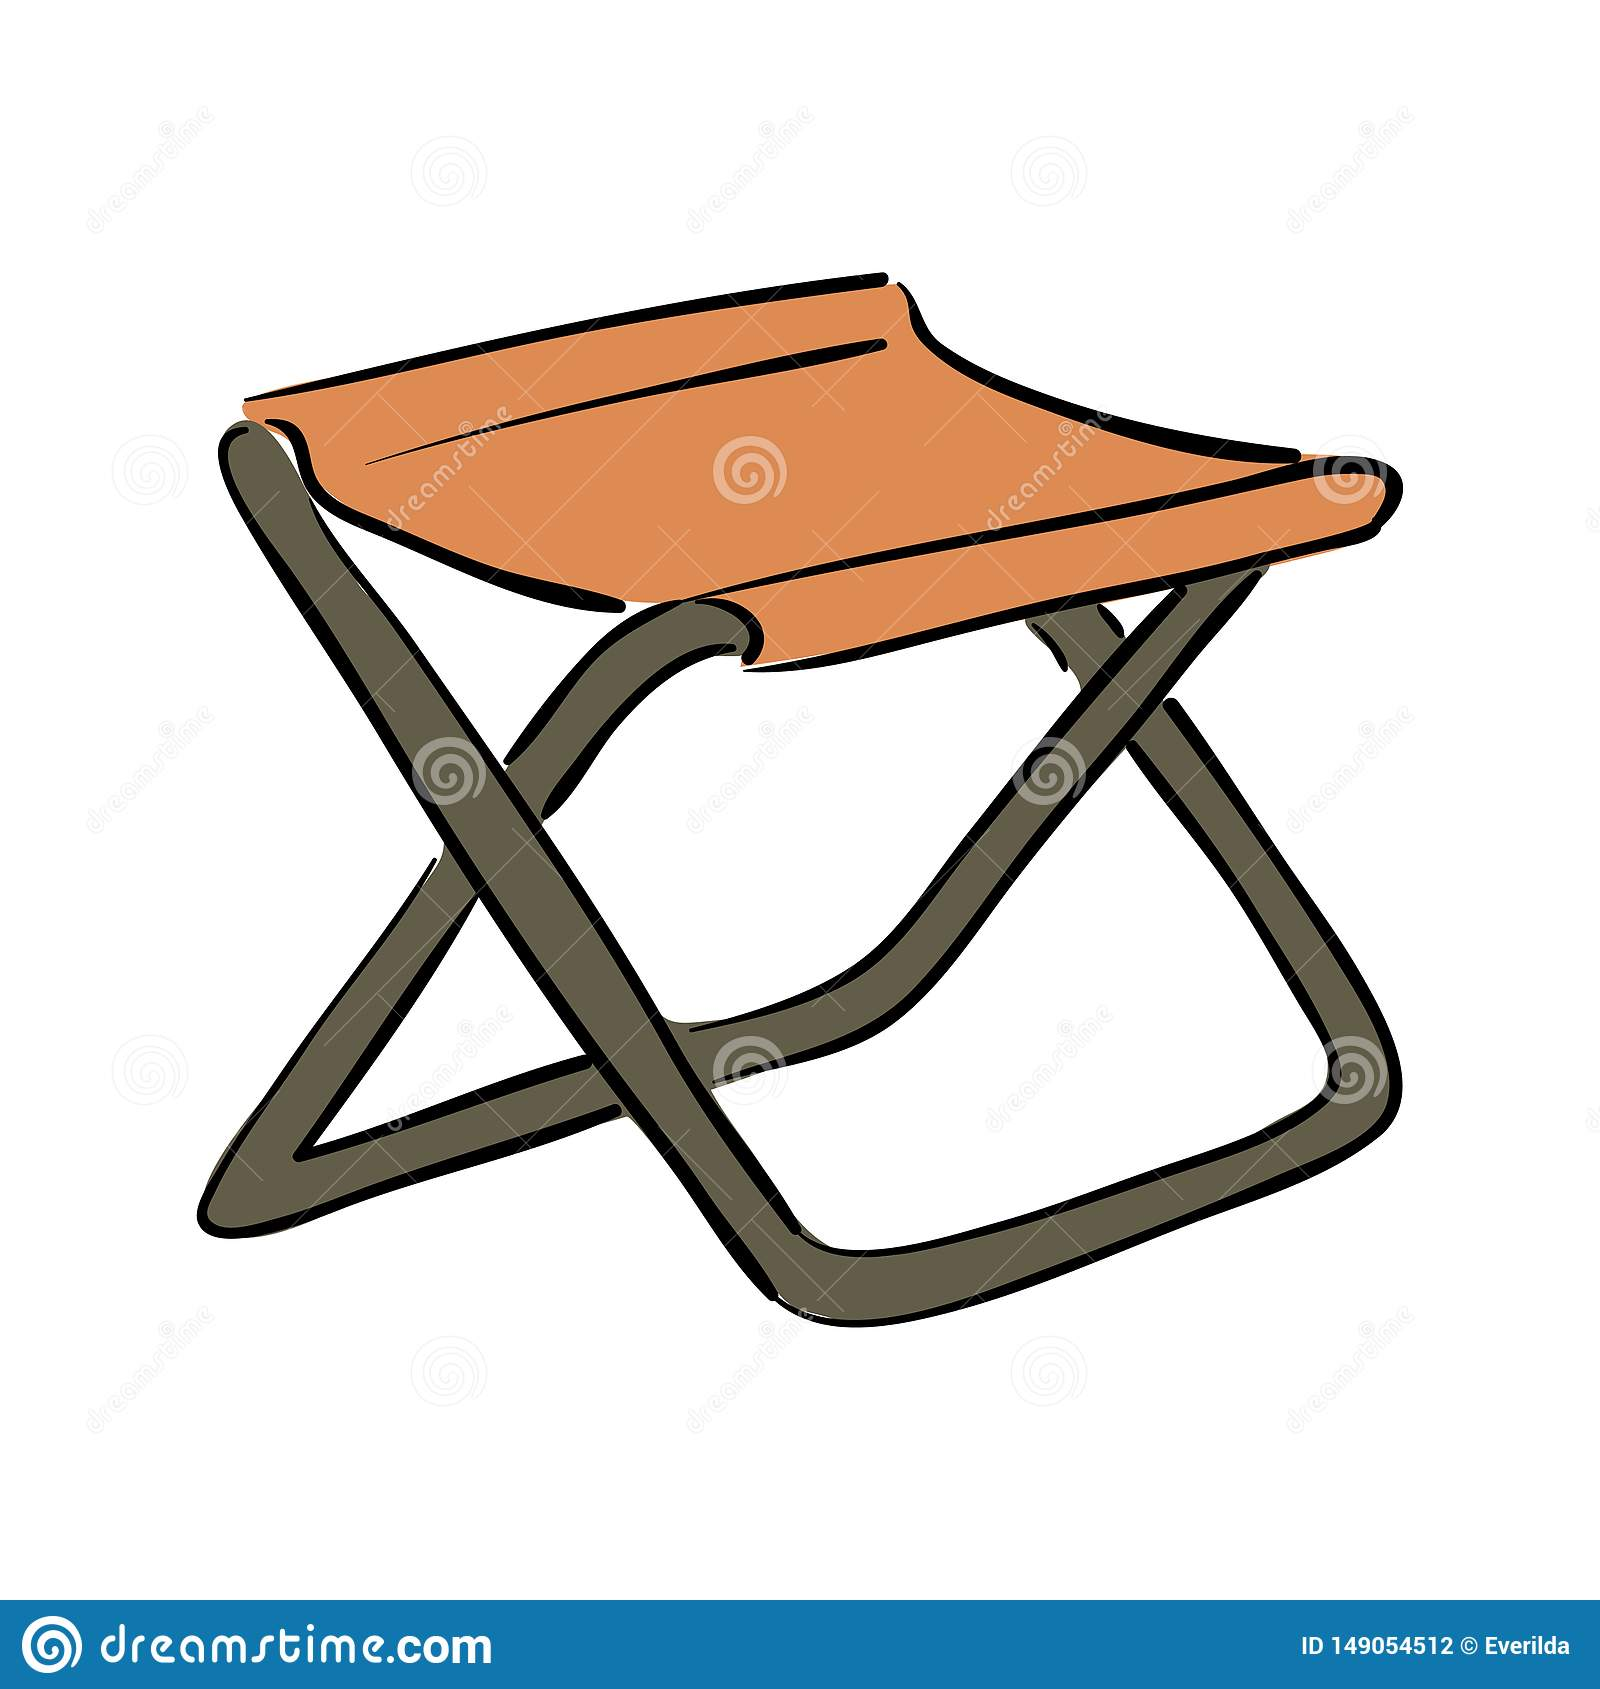 Icon Of Fishing Folding Chair White Background With Shadow Design